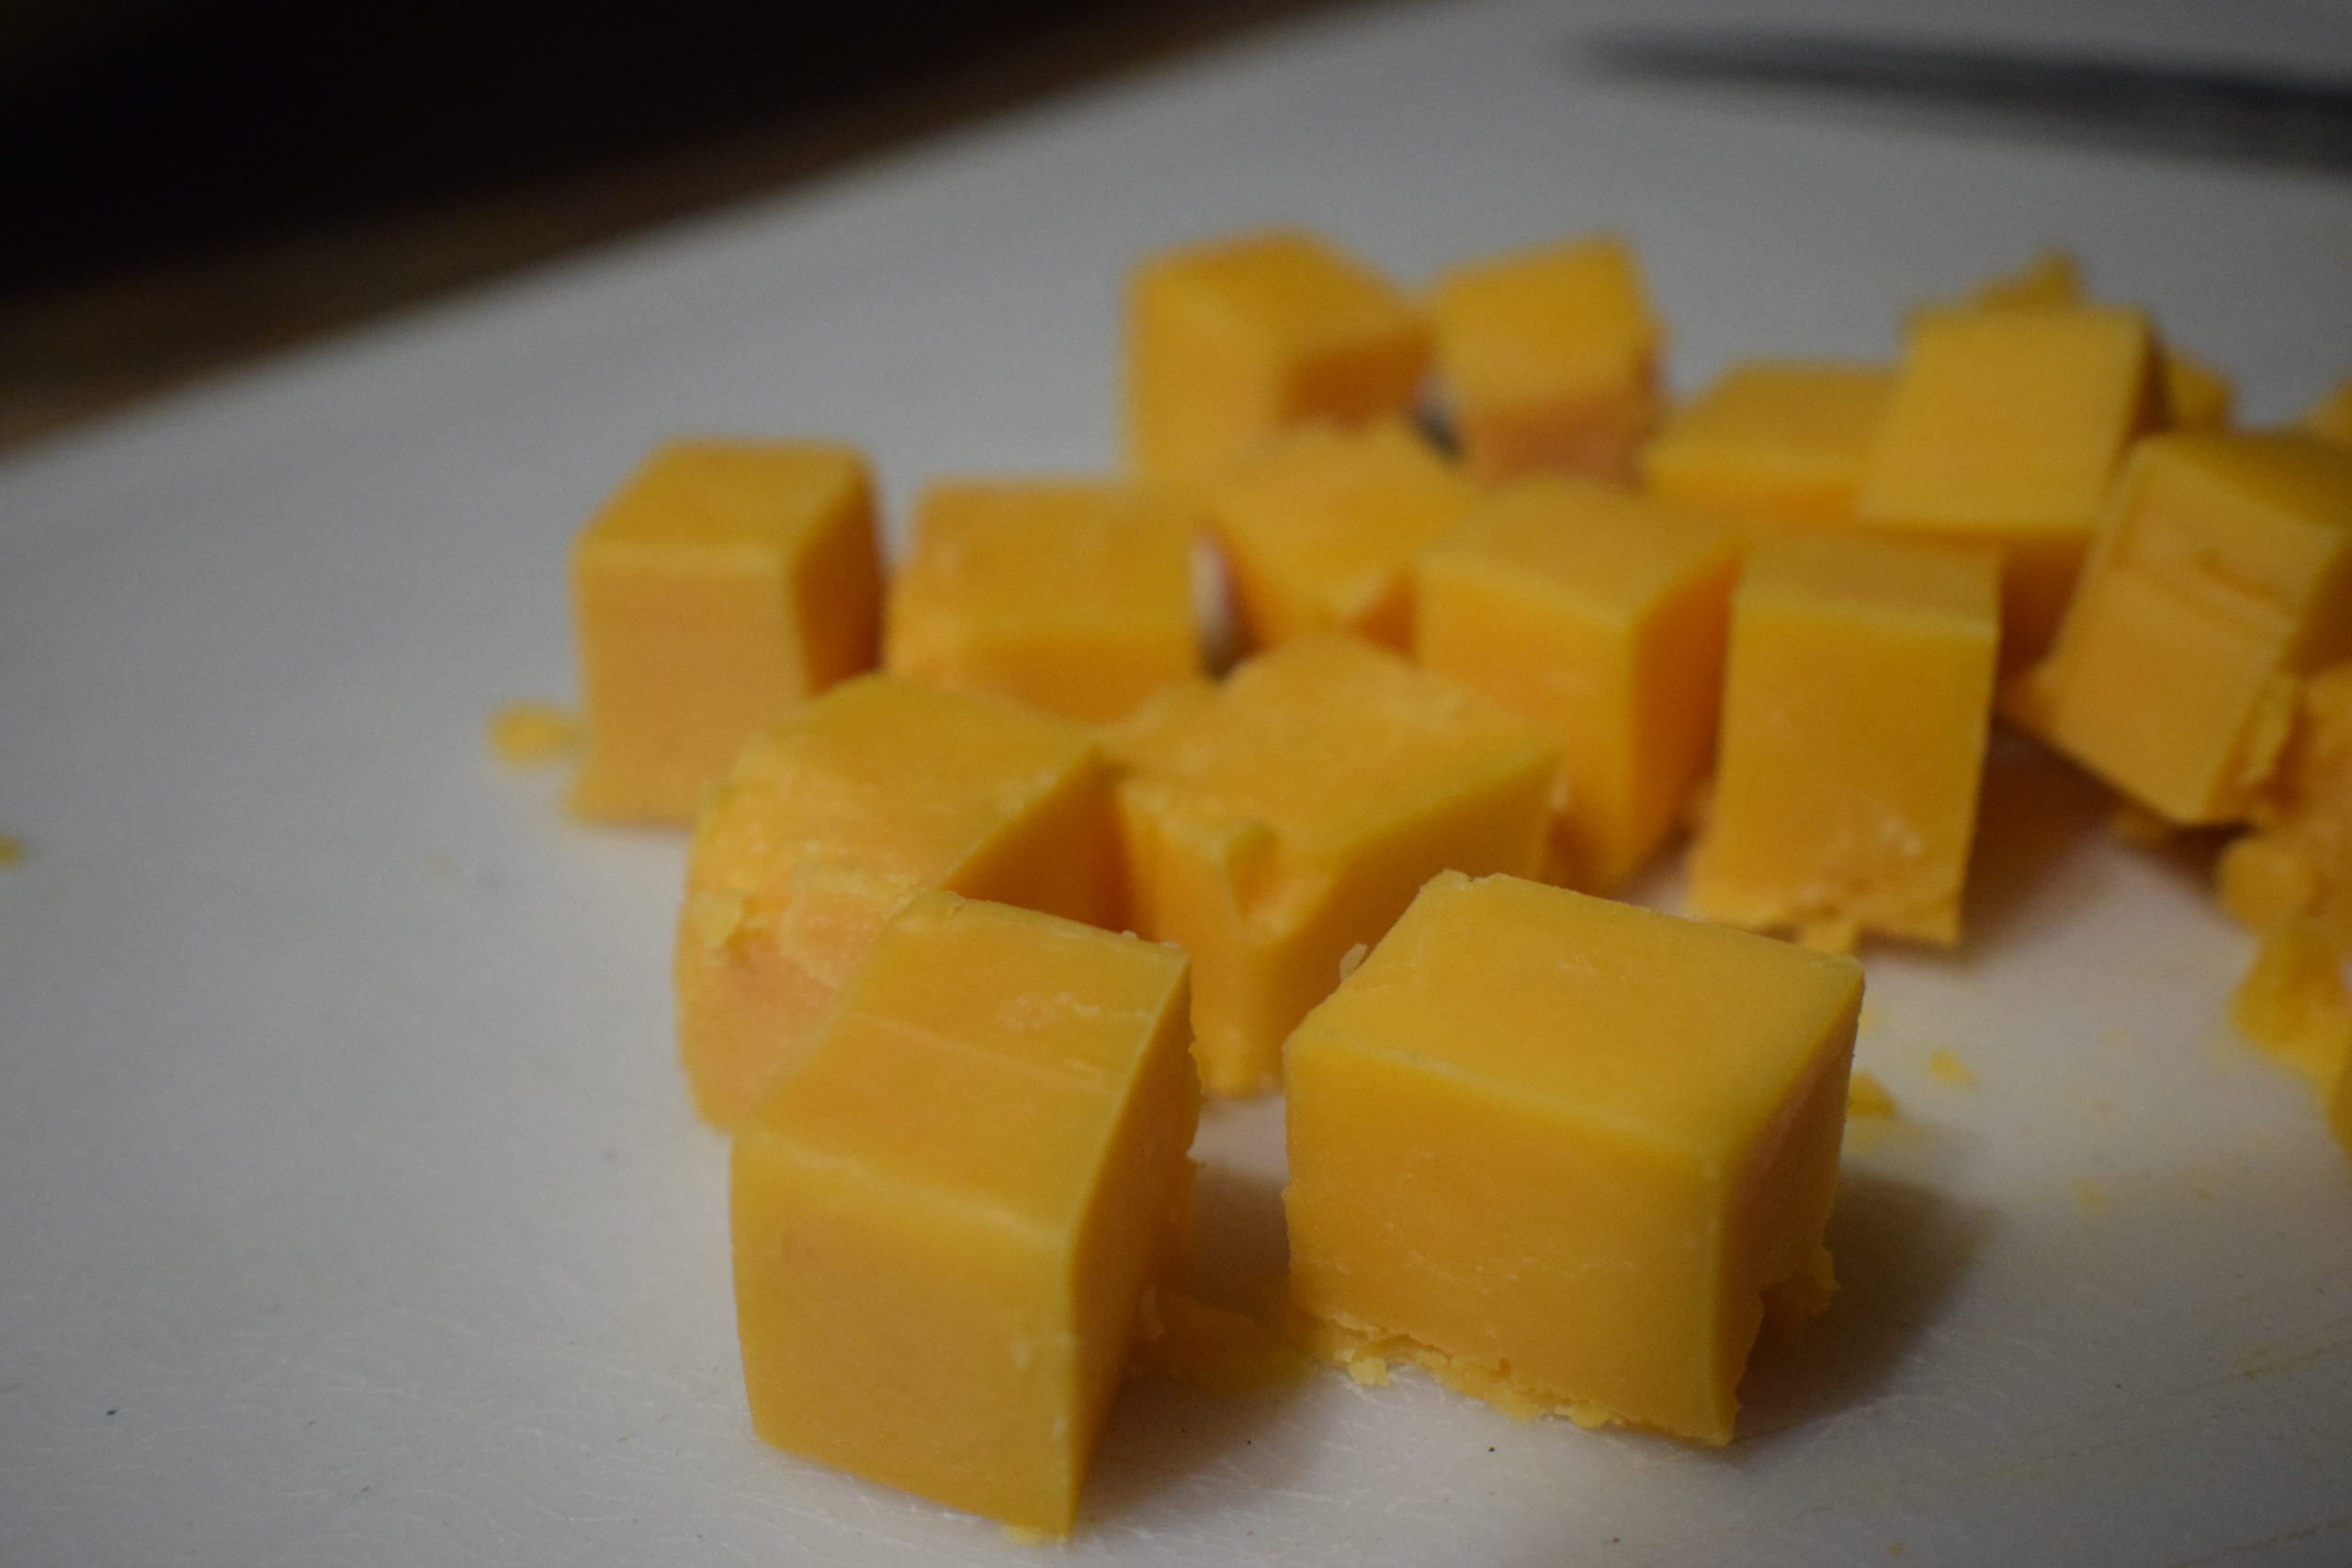 Cheddar cheese cubes on white plate